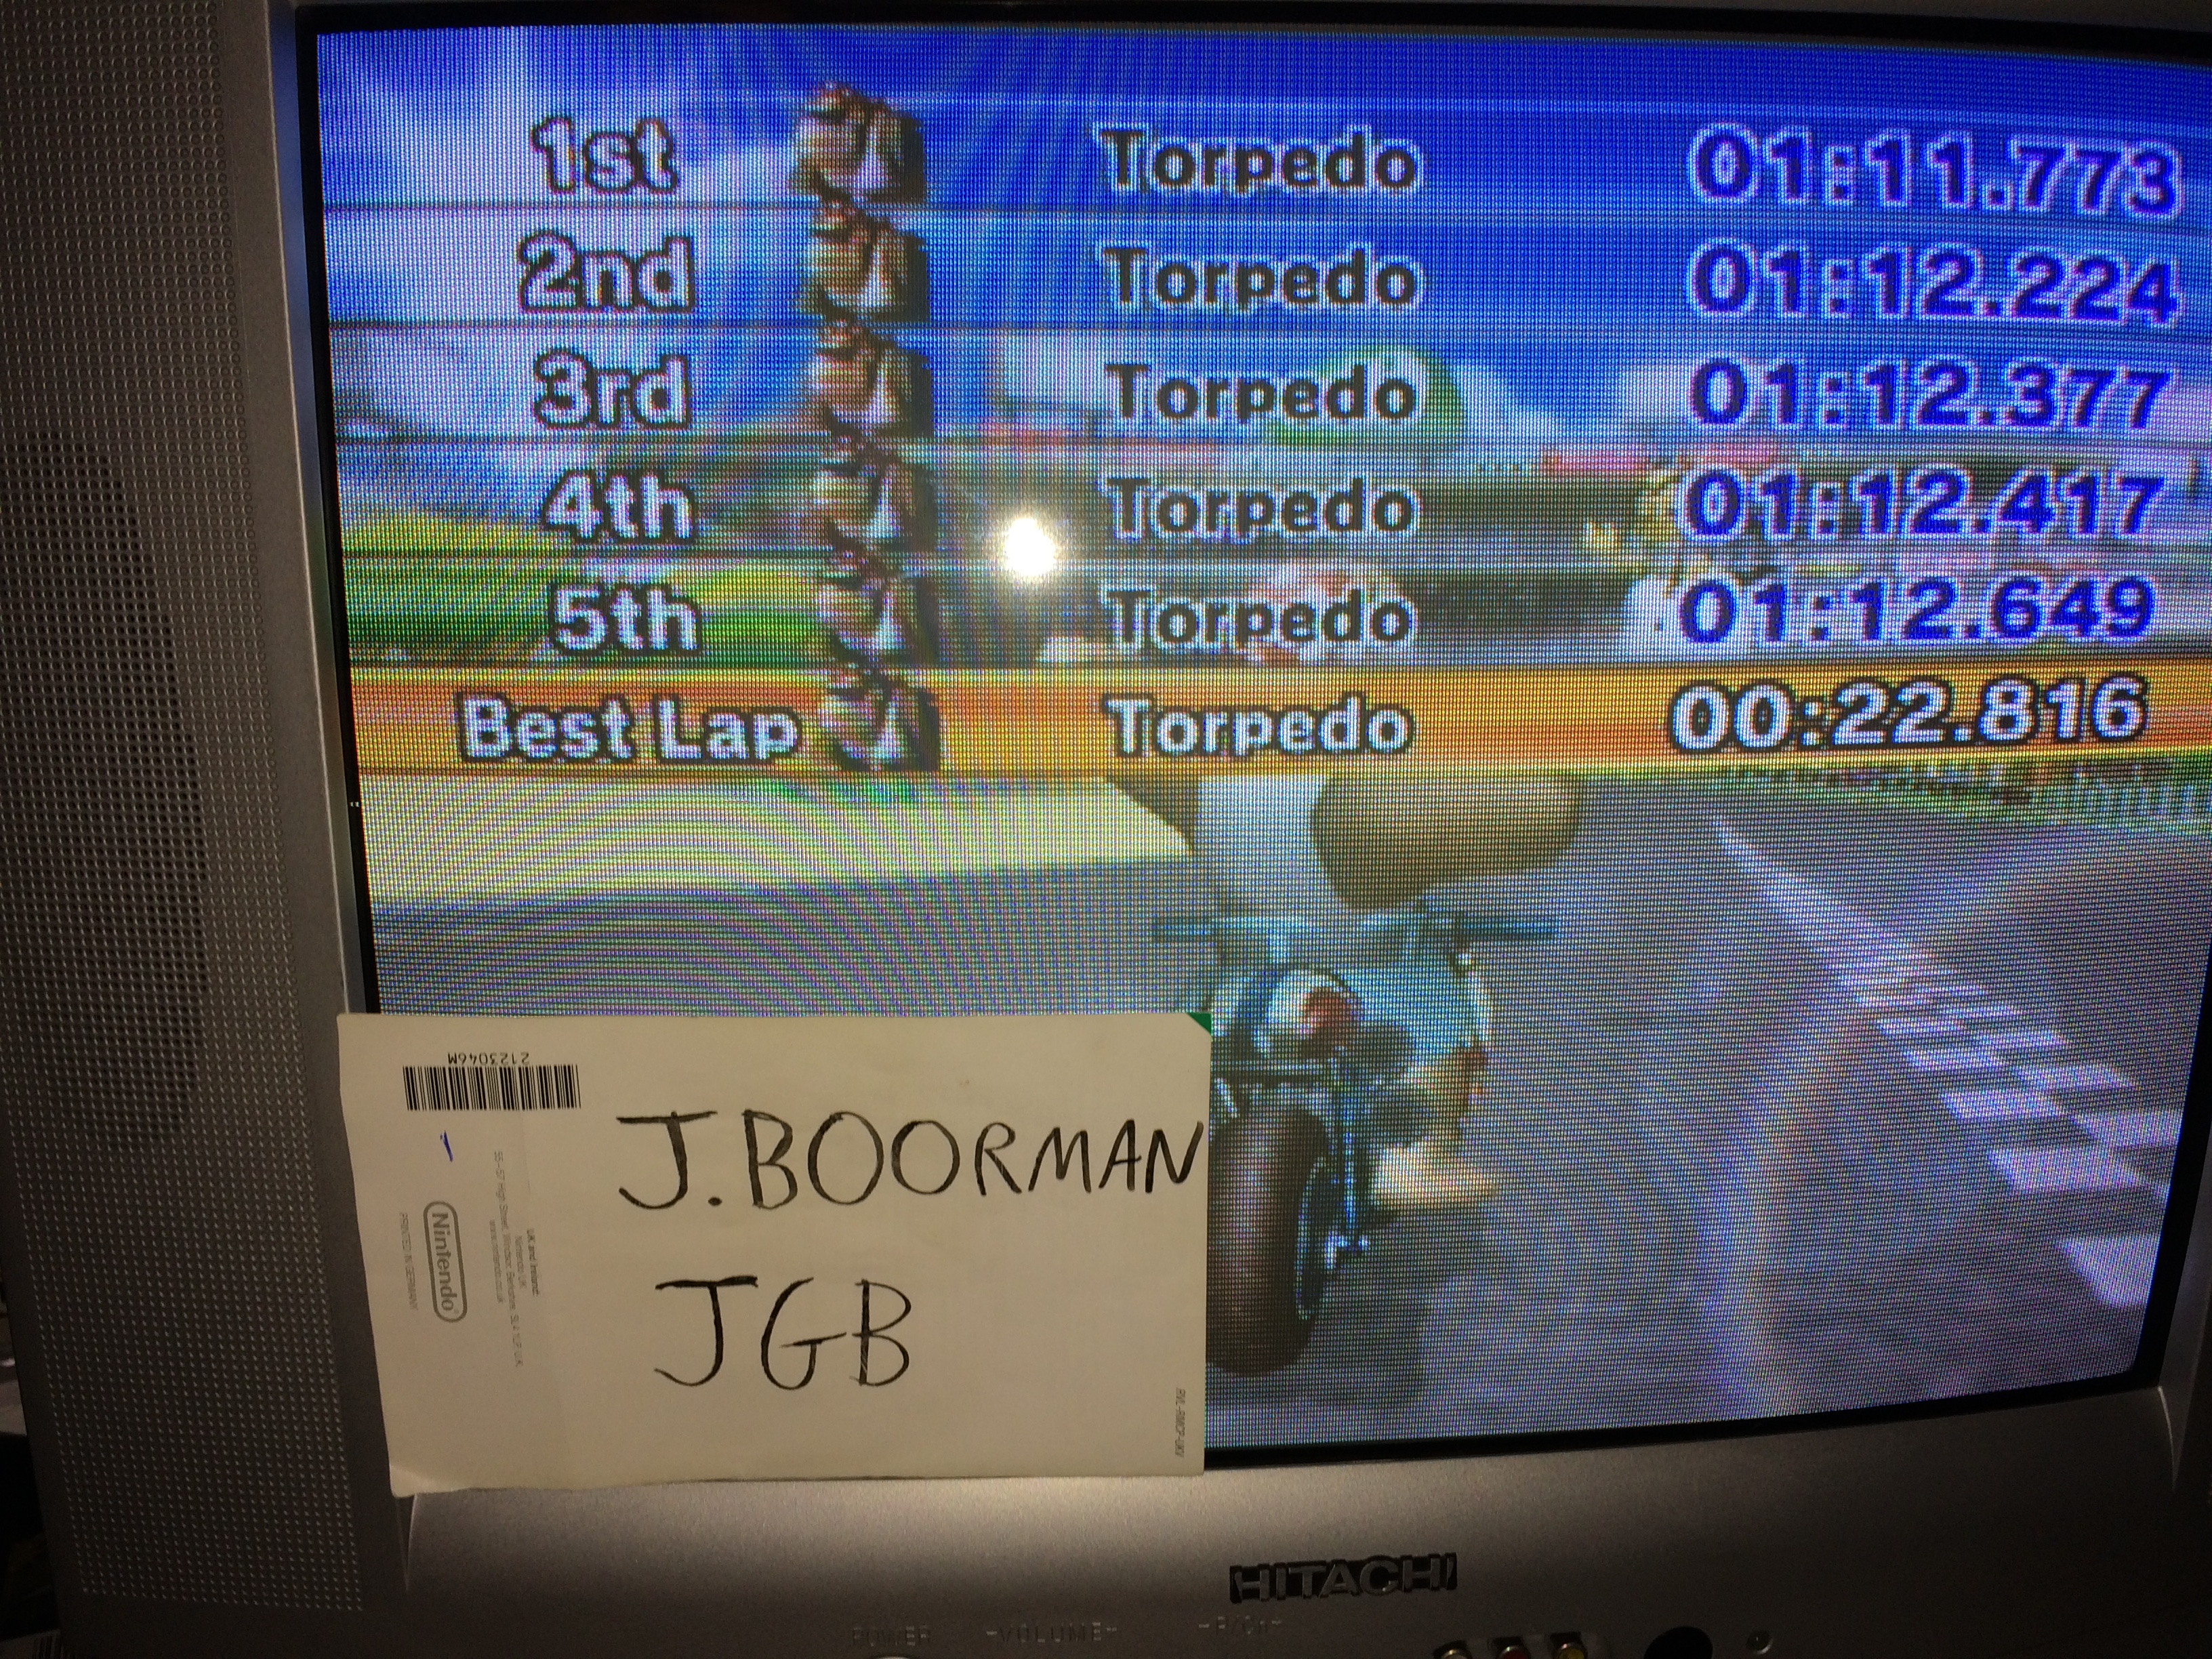 Mario Kart Wii: Time Trials: Luigi Circuit [Best Lap] time of 0:00:22.816